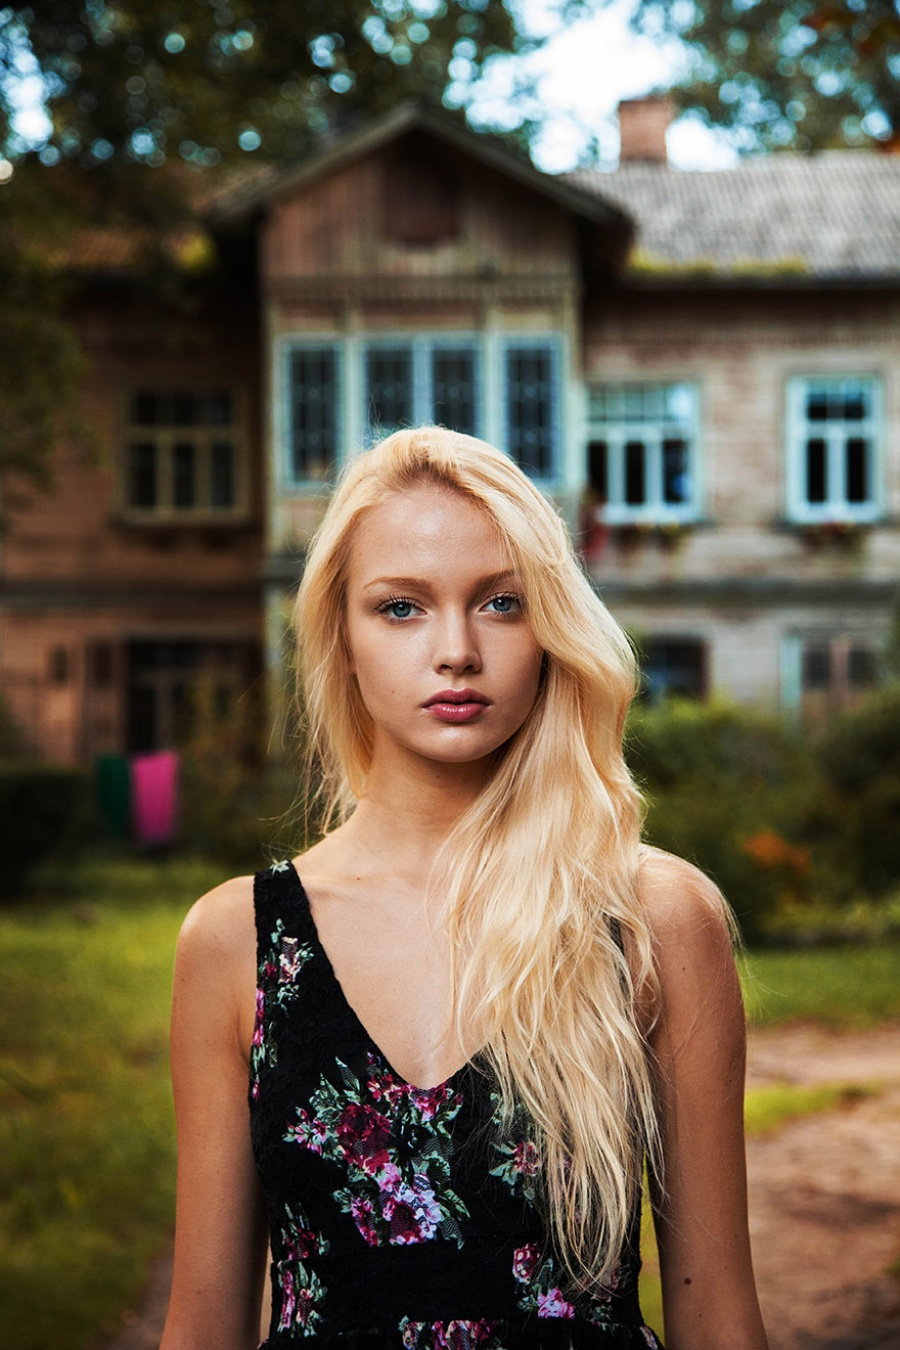 13377860-R3L8T8D-900-different-countries-women-portrait-photography-michaela-noroc-3-riga-latvia